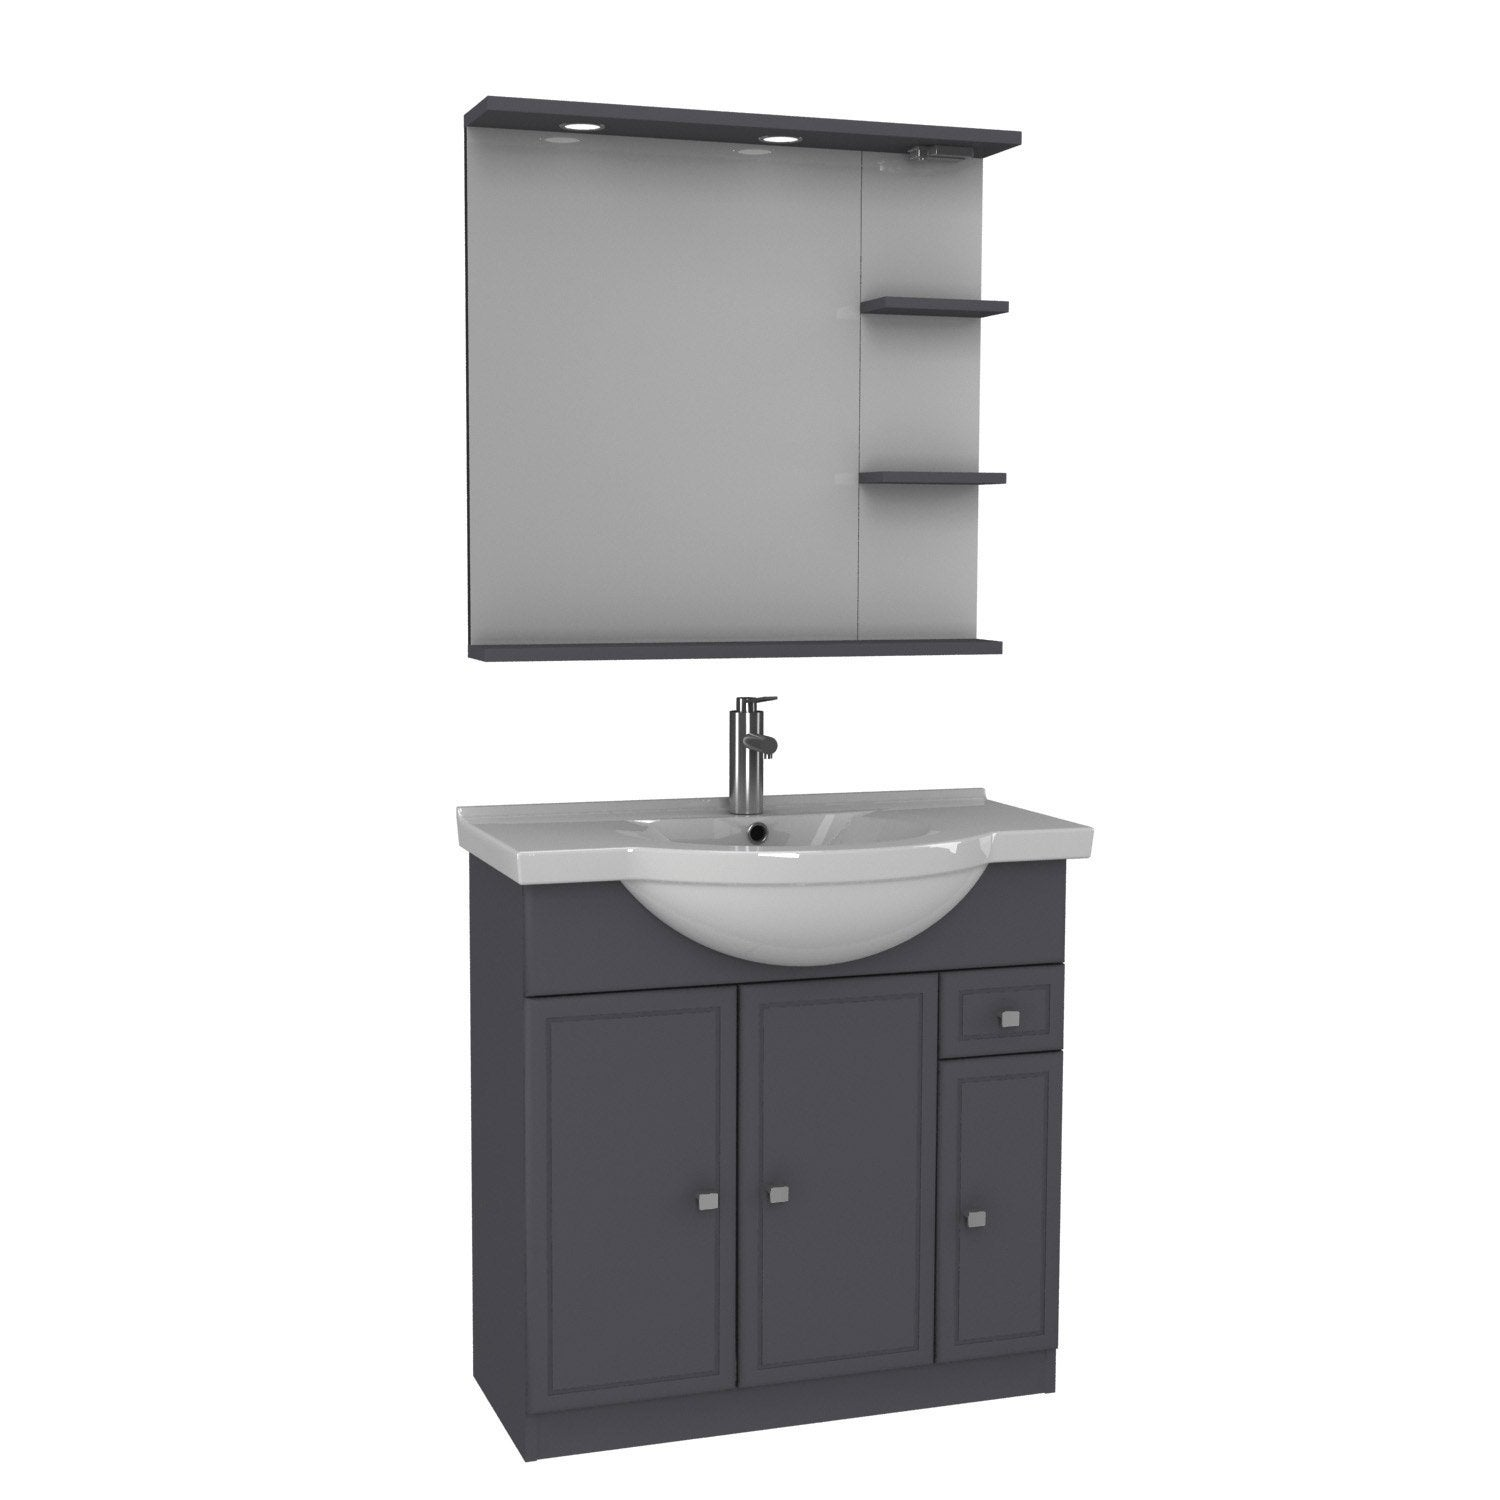 Meuble vasque 85 cm gris galice leroy merlin for Meubles 85